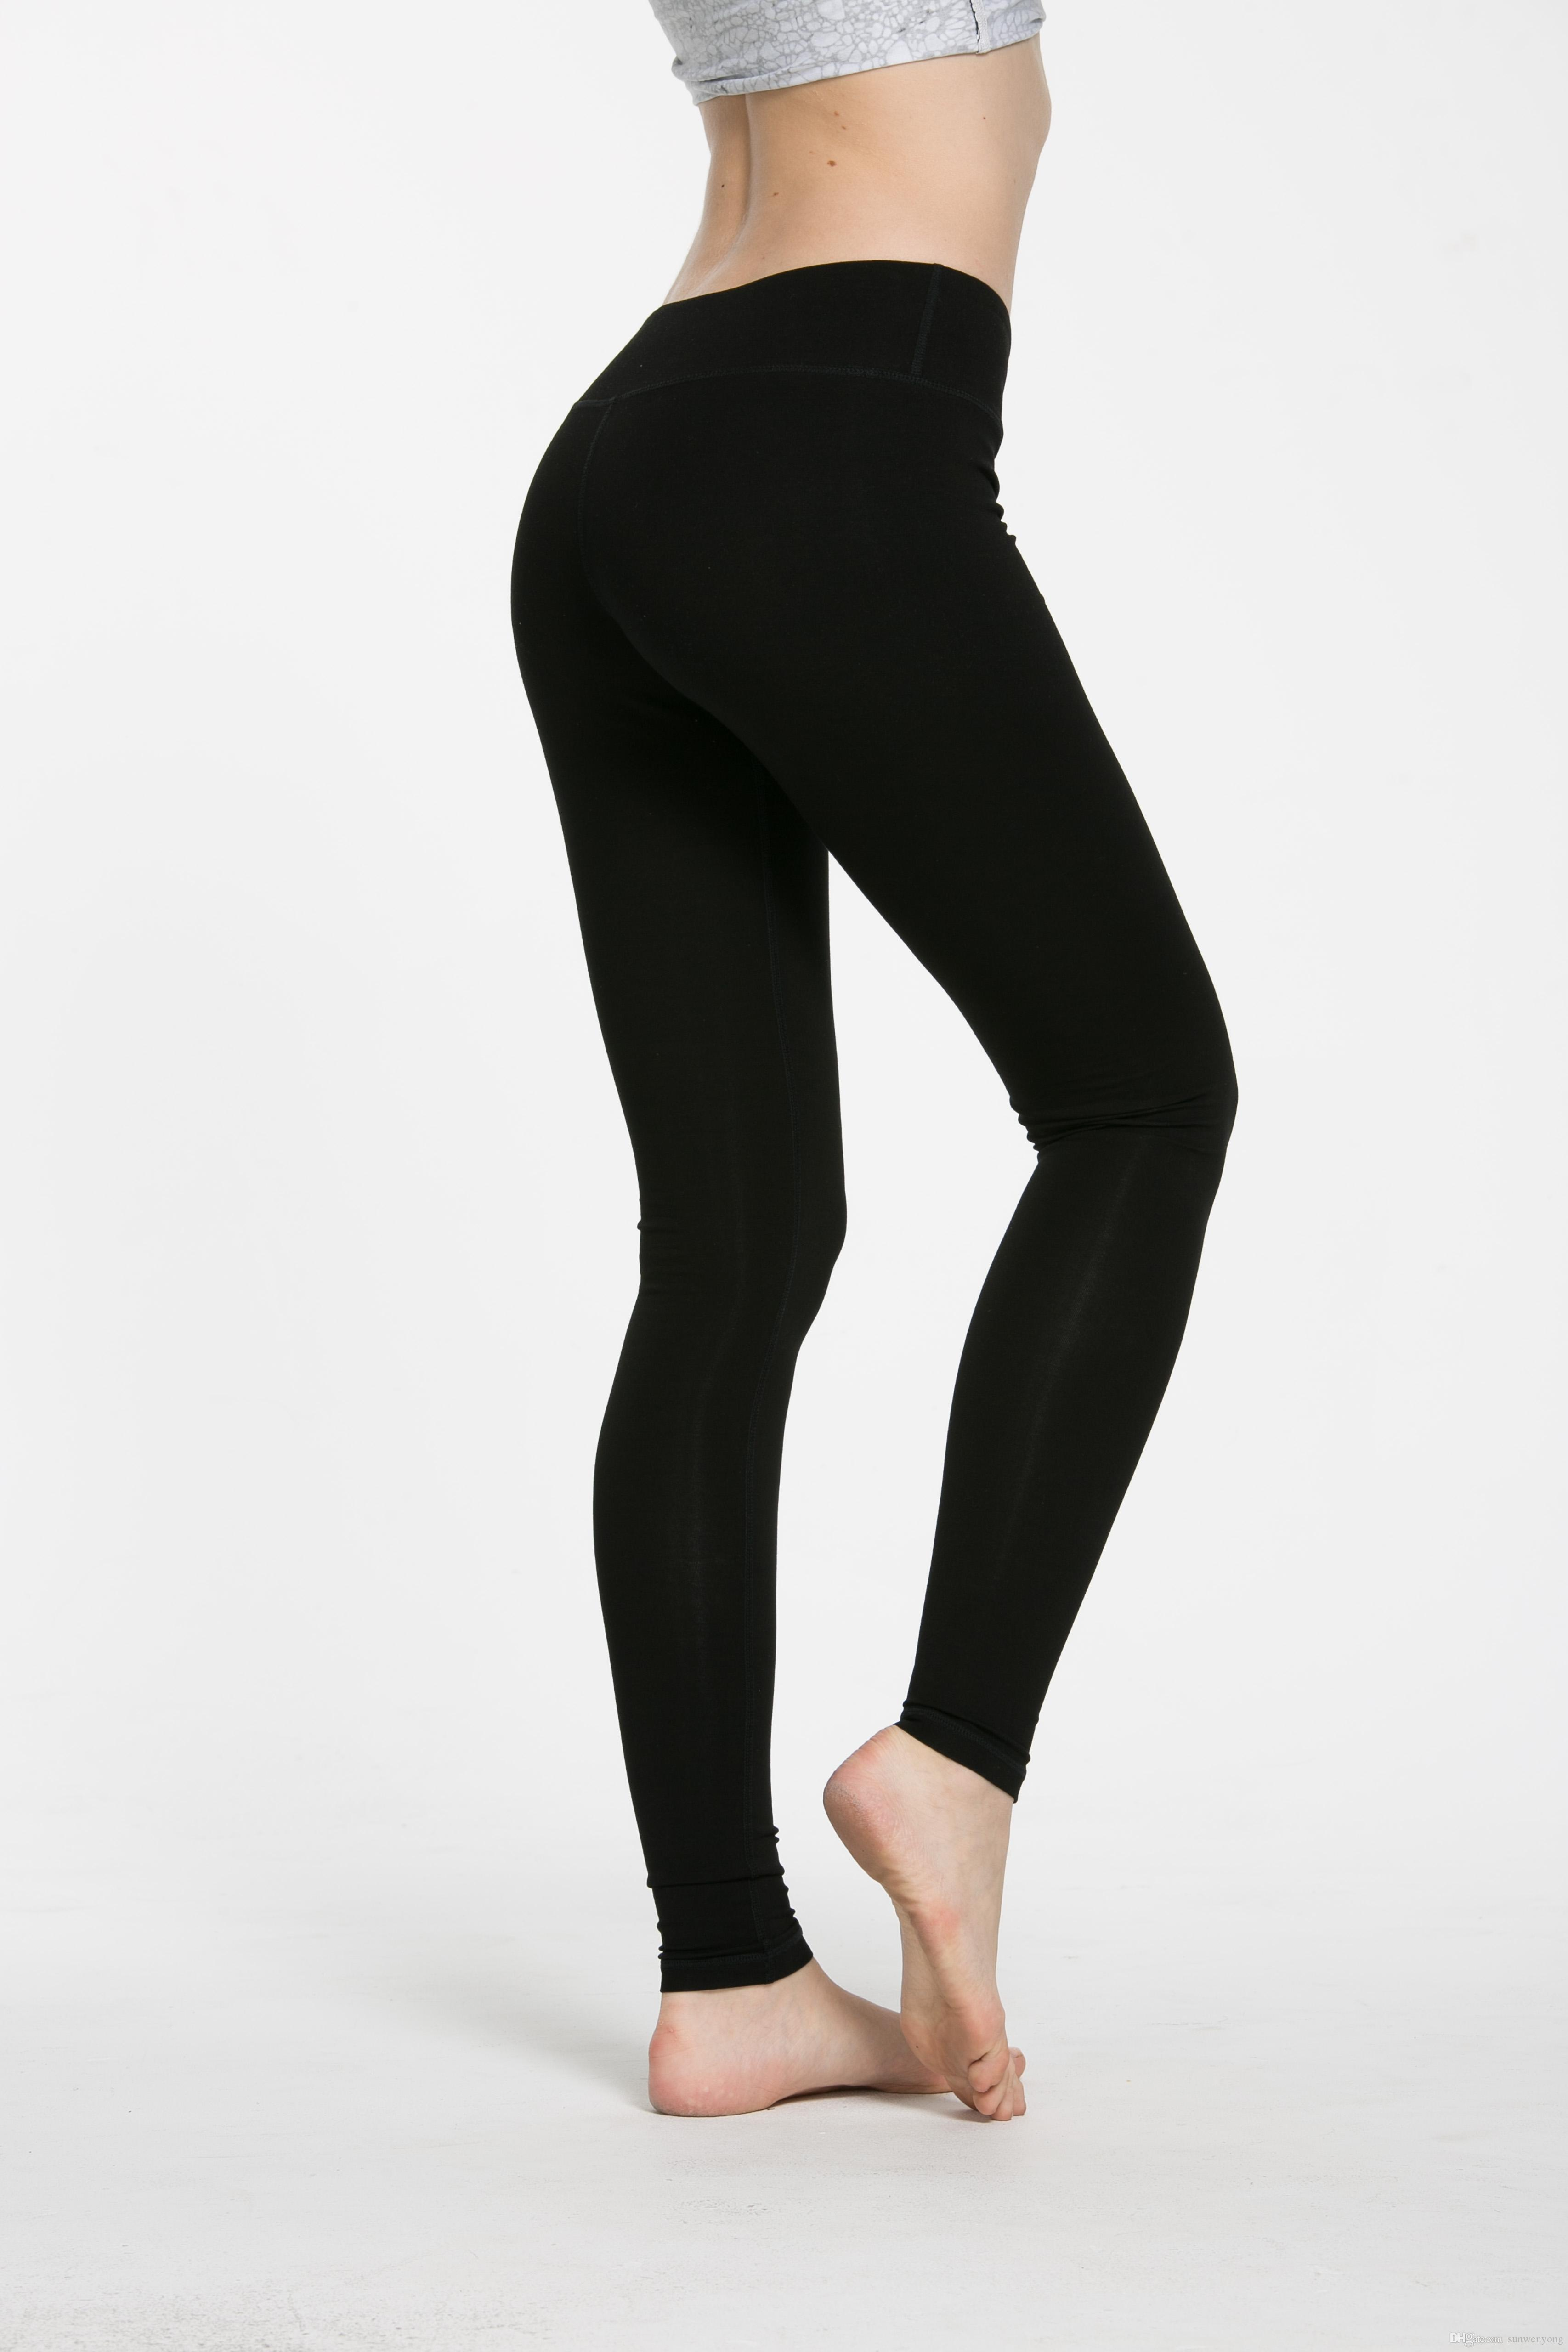 2019 2017 Fashion Sexy Women Yoga Outfits Elastic Leggings Pants Spandex  Thicken Material Clothing Running Dropshipping Ok From Sunwenyong, $18 1 |